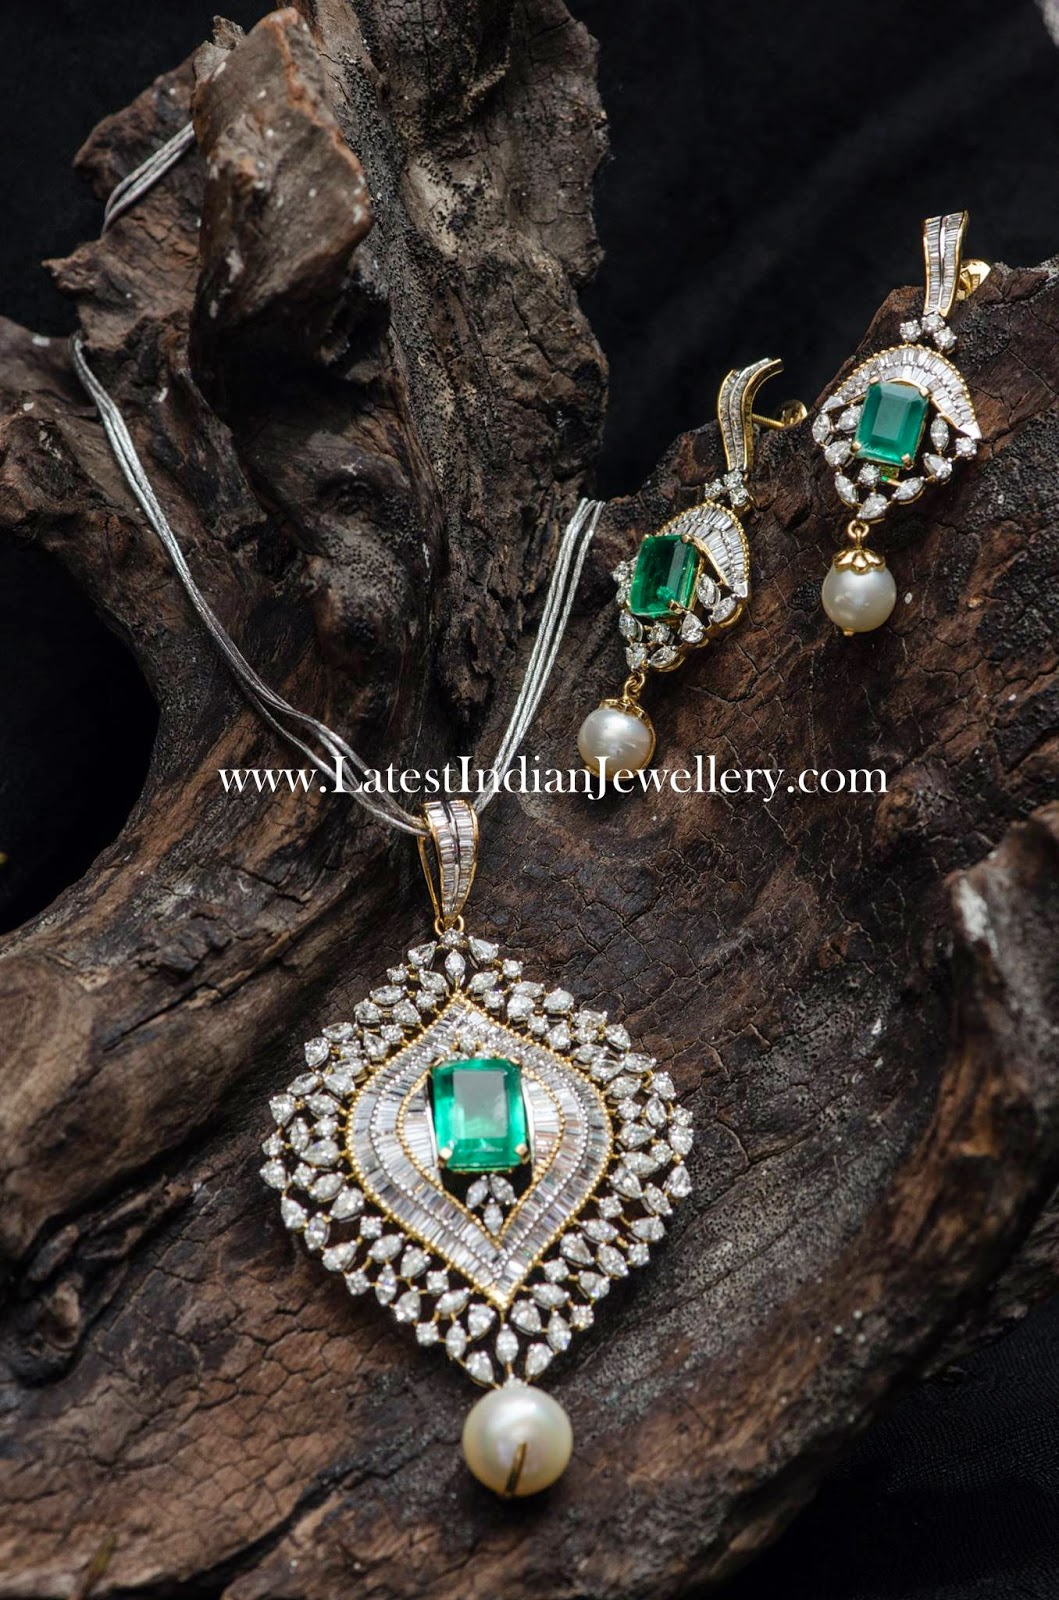 Diamond Pendant Set with Emeralds